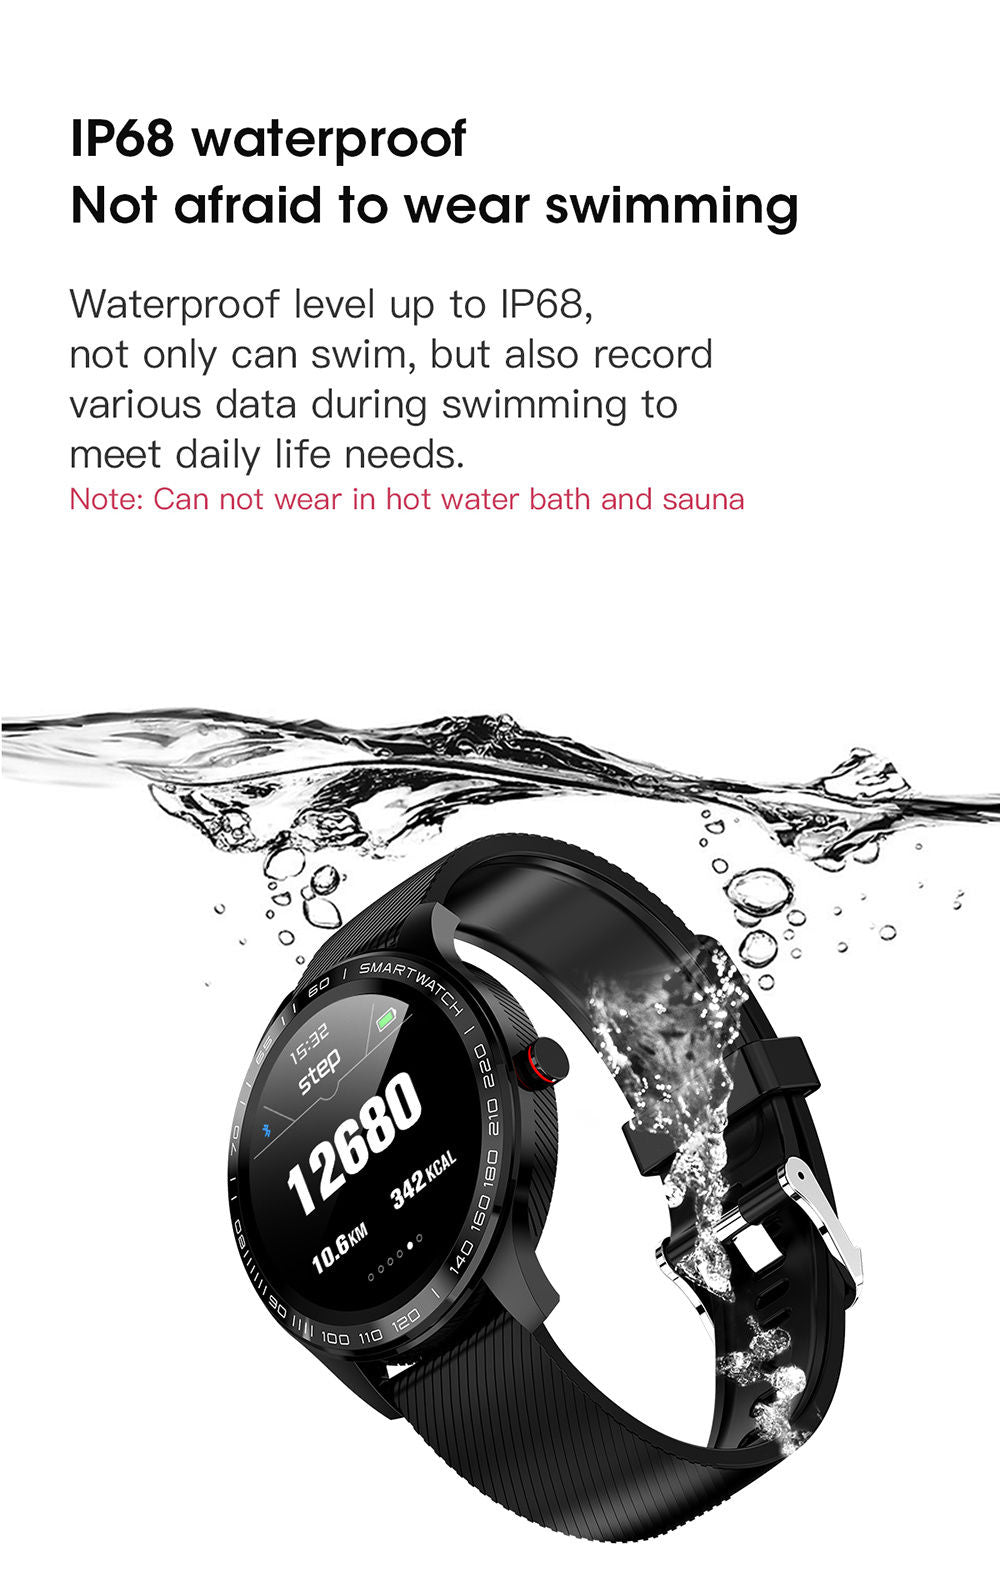 detailed description of L9 smart watch 6